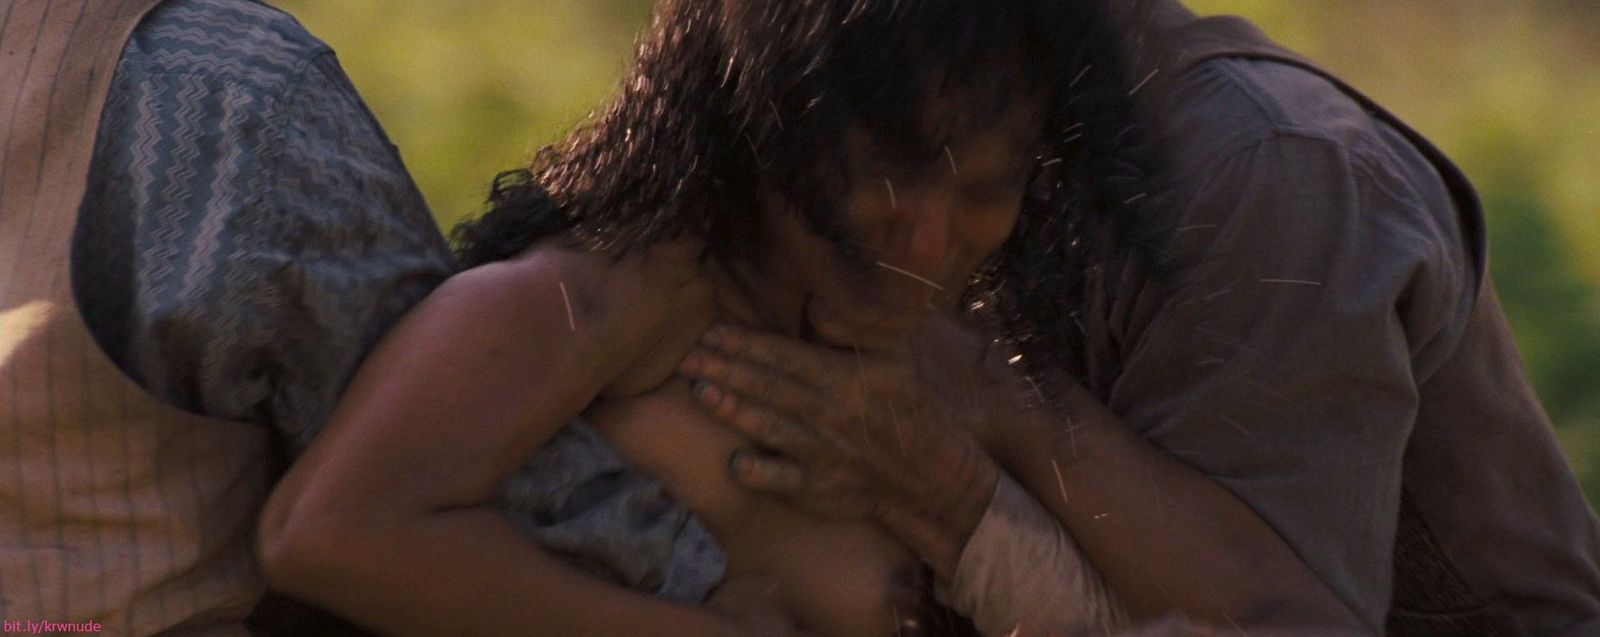 Kerry washington topless sex scene mampc - 1 part 5